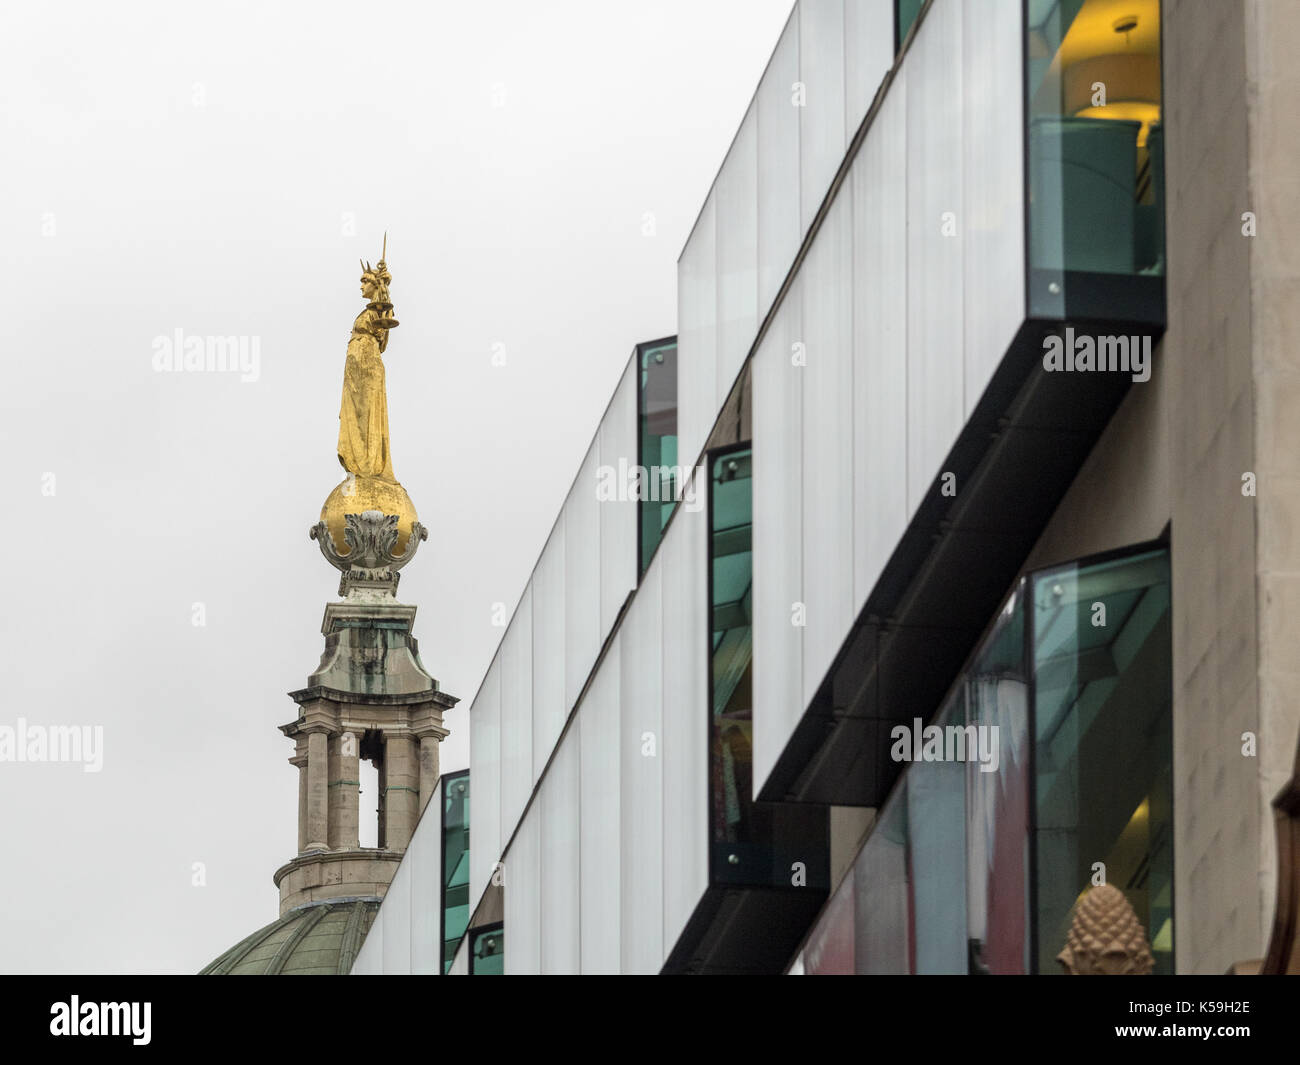 Lady Justice statue on the Old Bailey behind City of London building - Stock Image